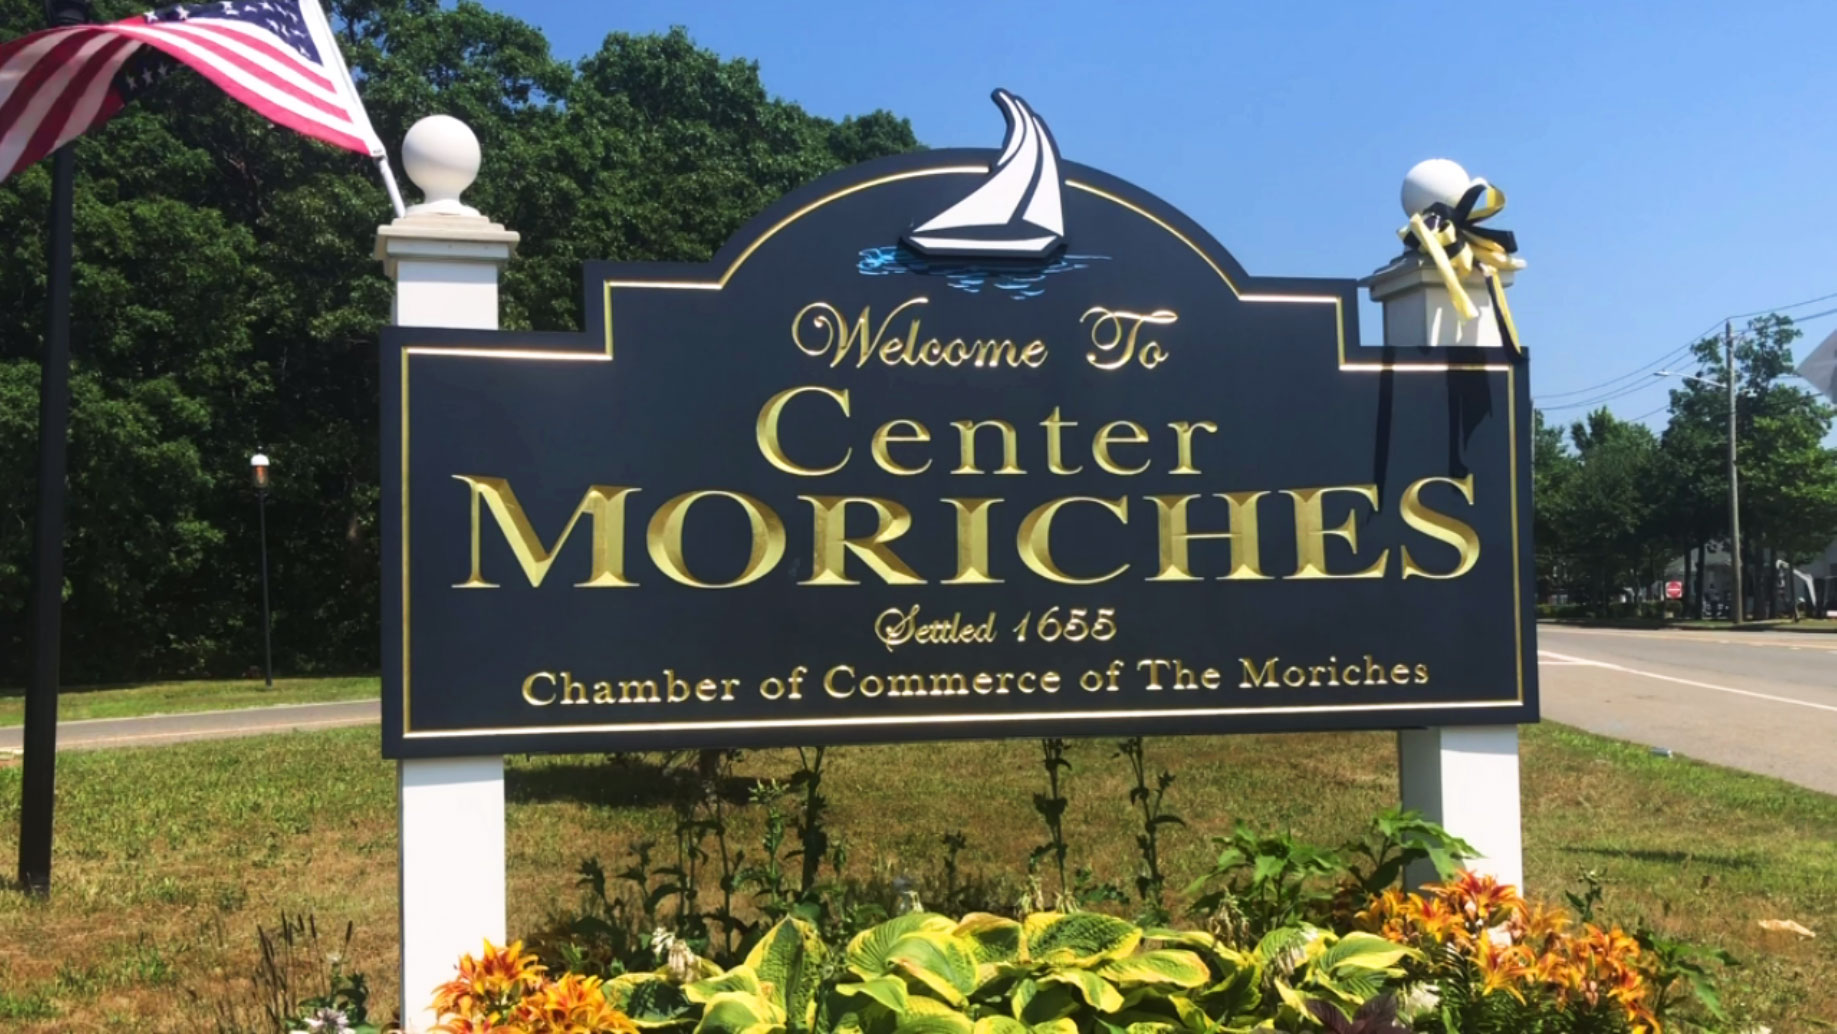 Welcome to Center Moriches